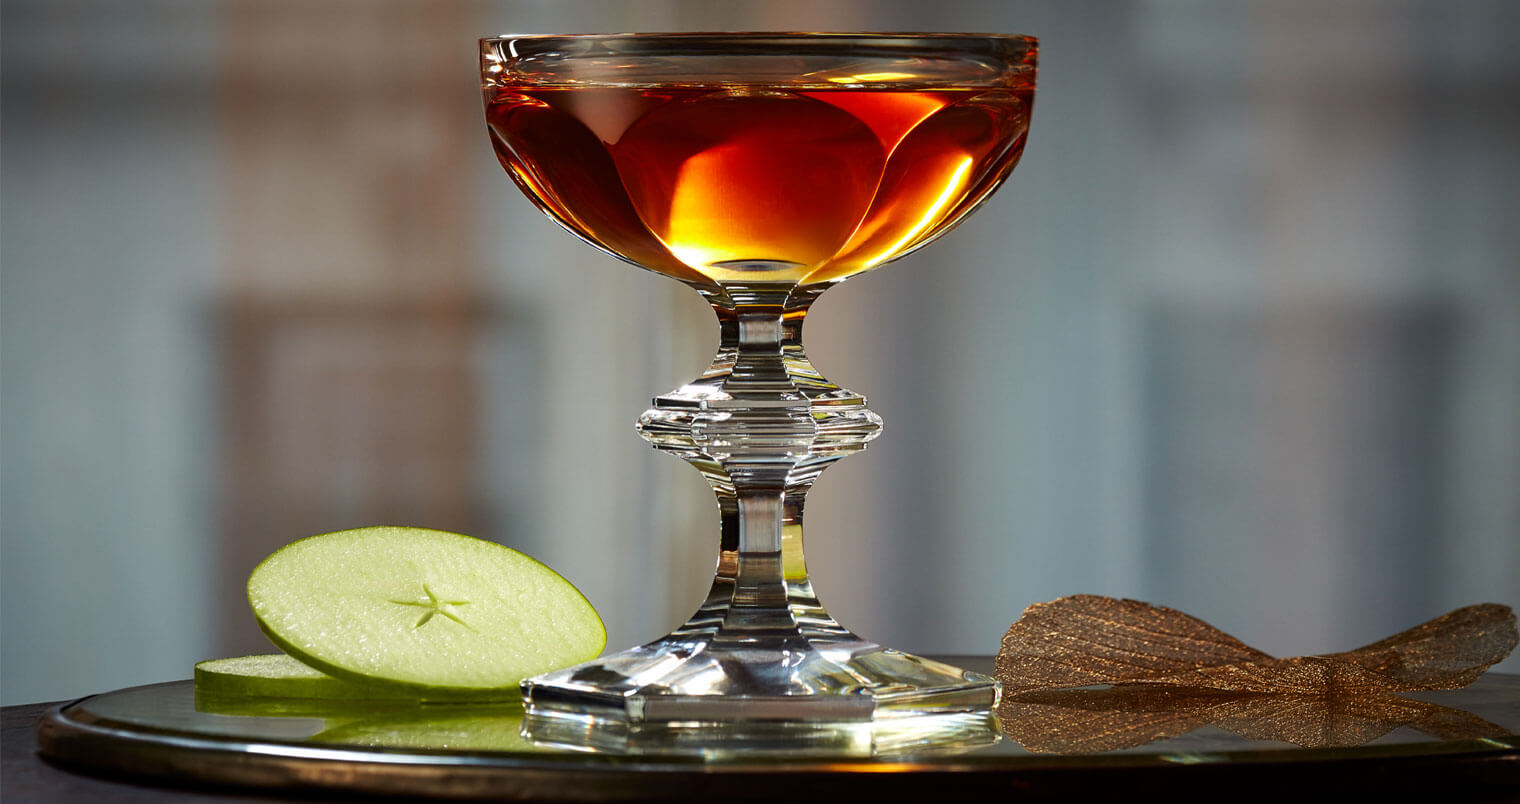 Star of Autumn, cocktail in ornate challise, featured image